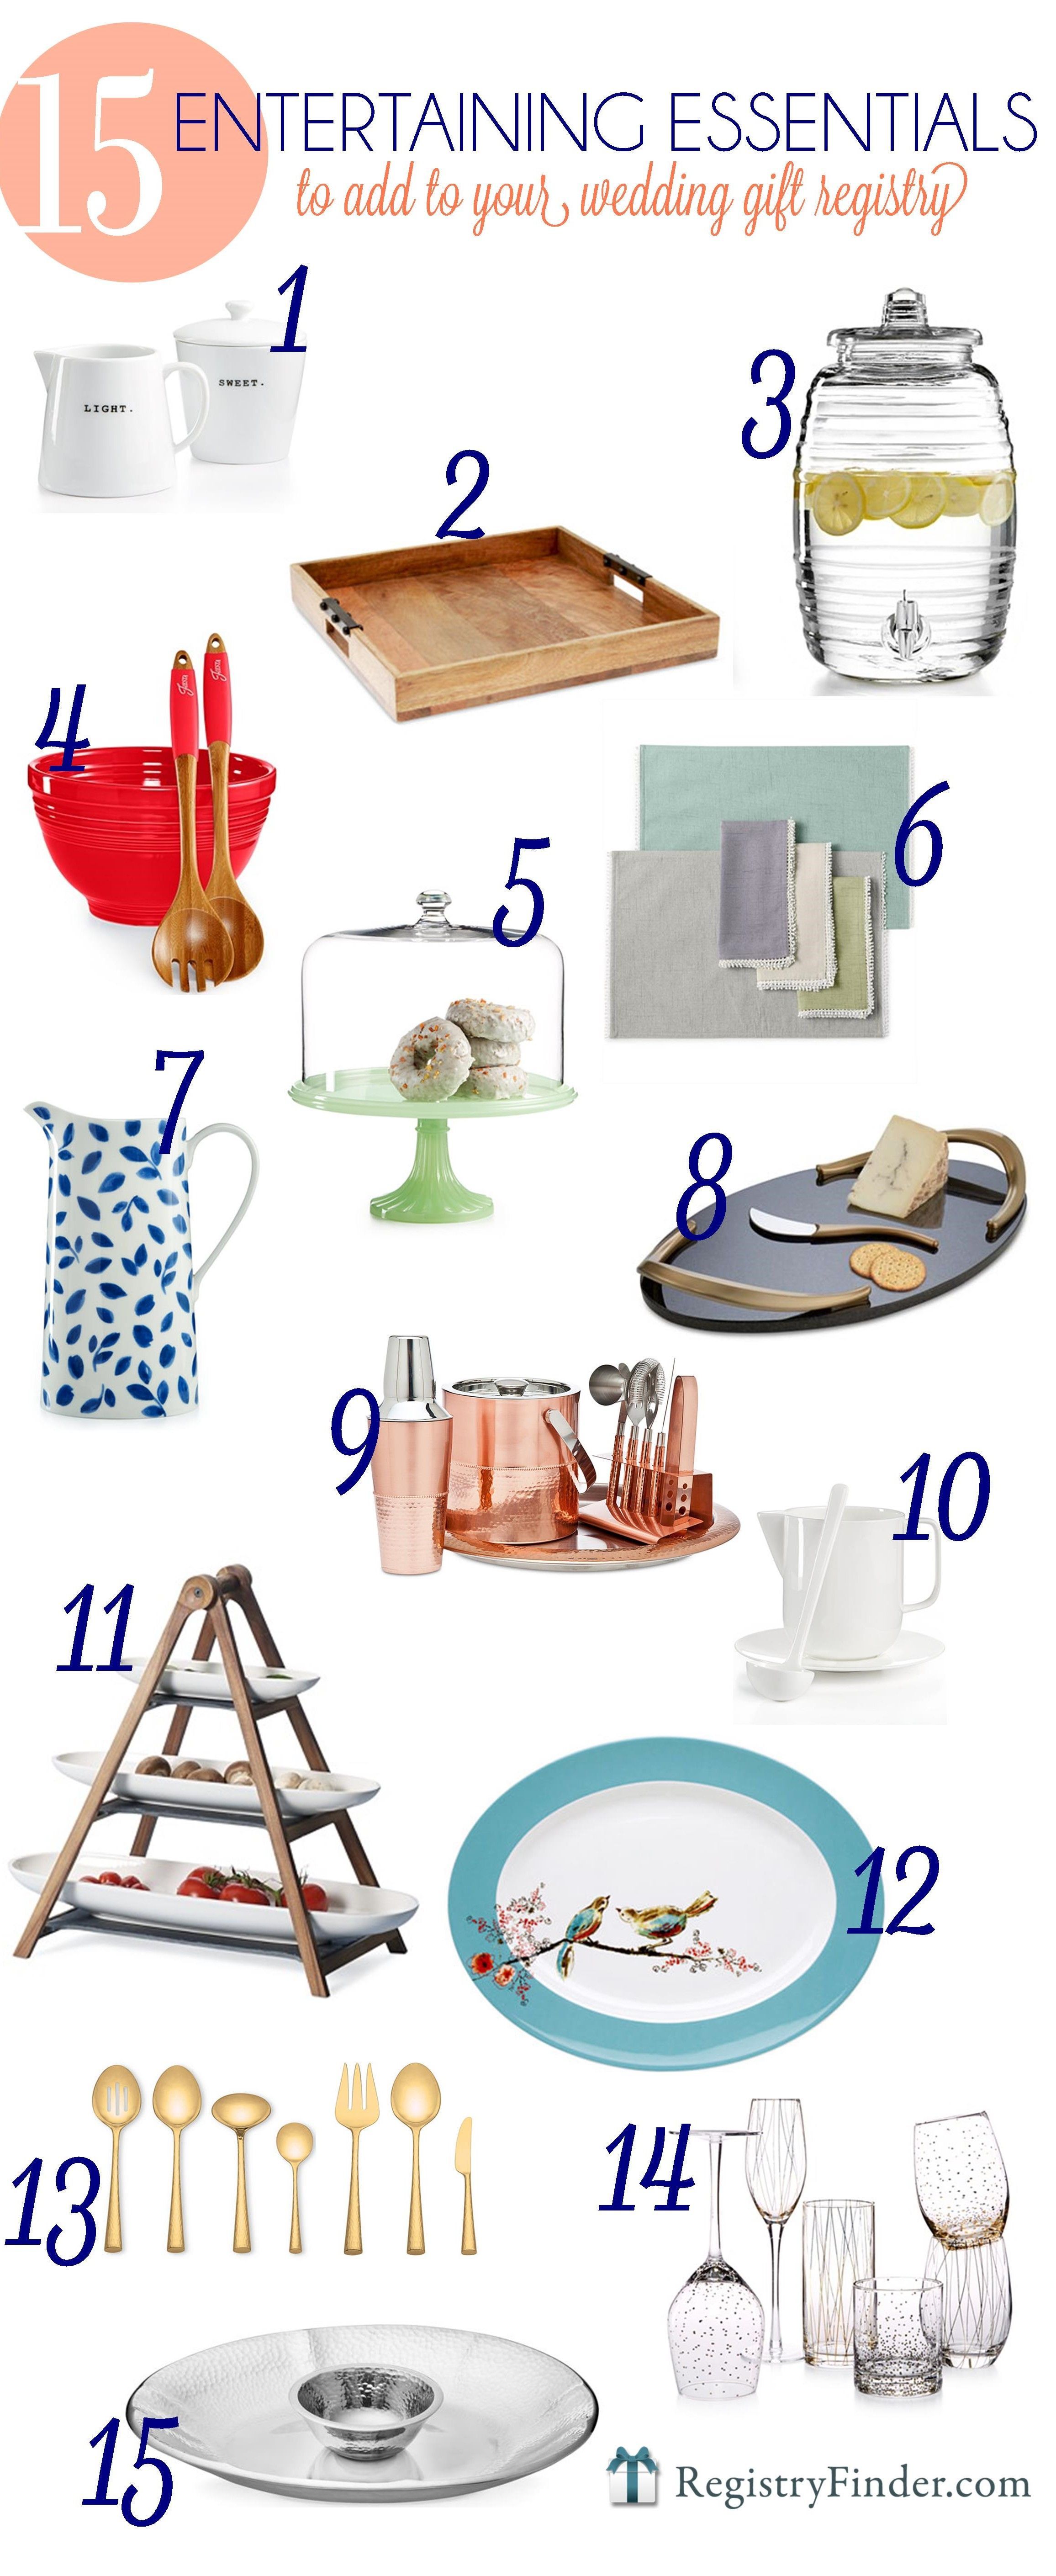 Entertaining Essentials Top 15 Pieces to add to Your